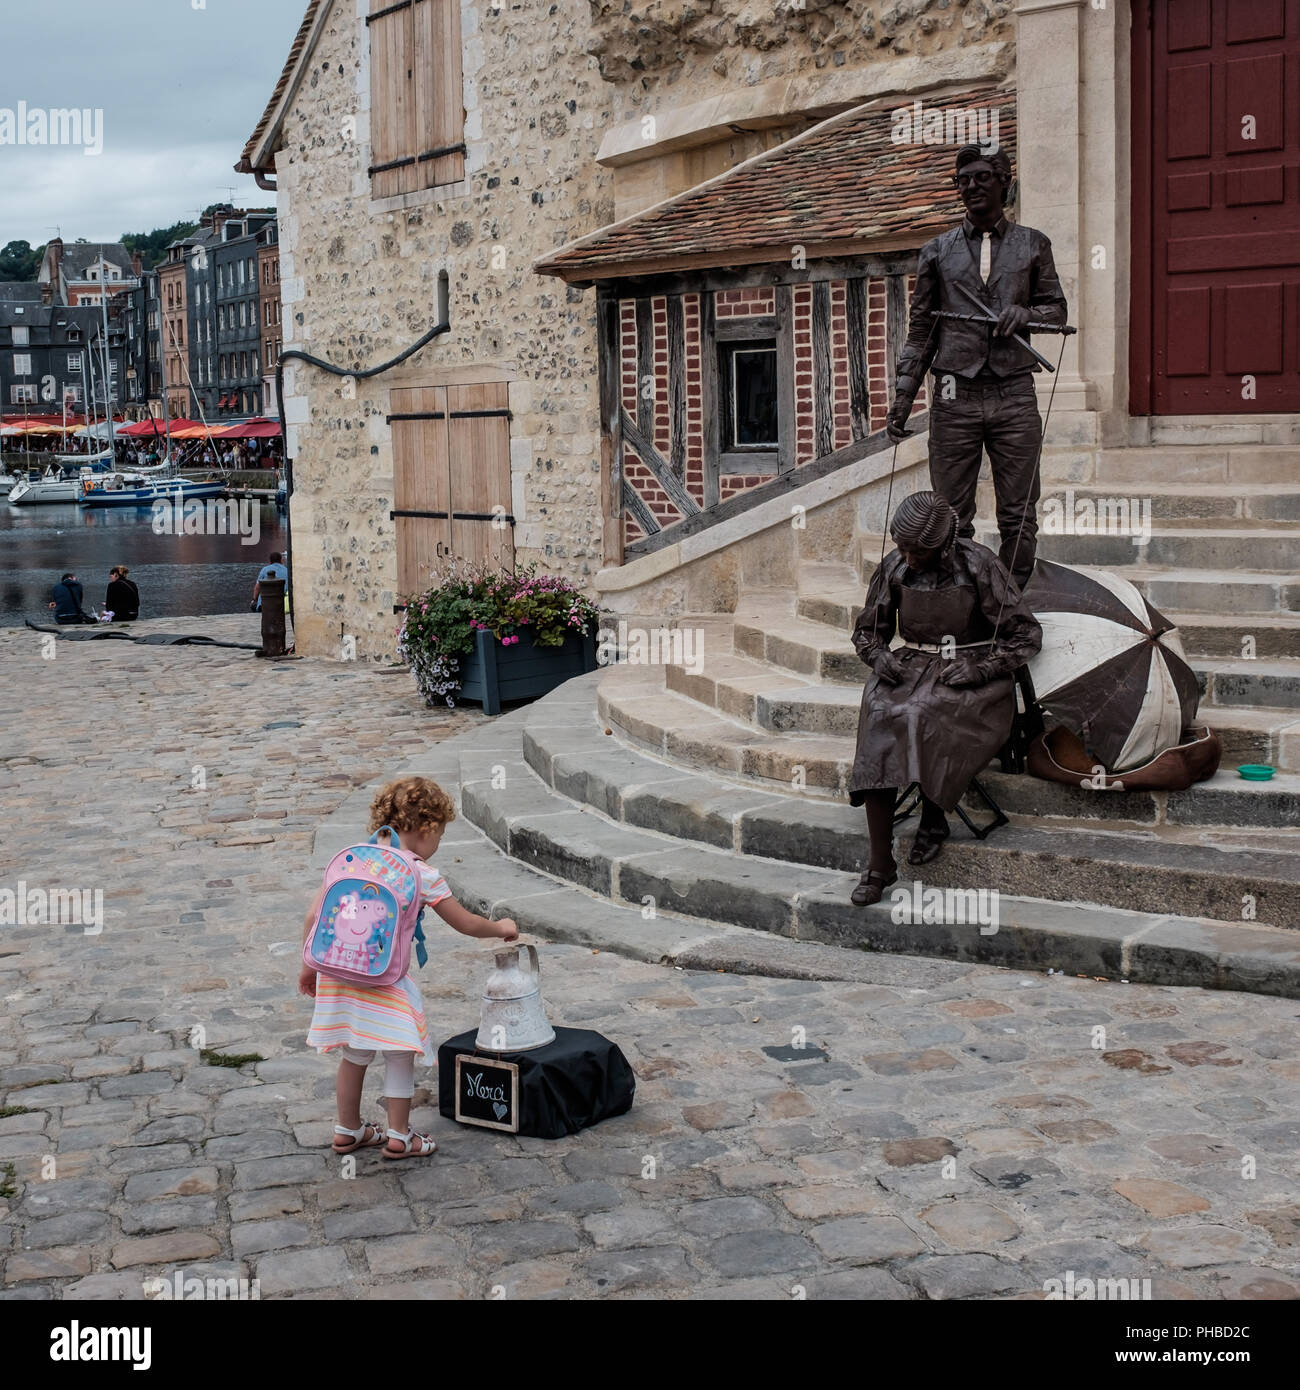 Child and living statues in the famous village of Honfleur, Wednesday 23 August 2017, Honfleur, Normandy, France. - Stock Image